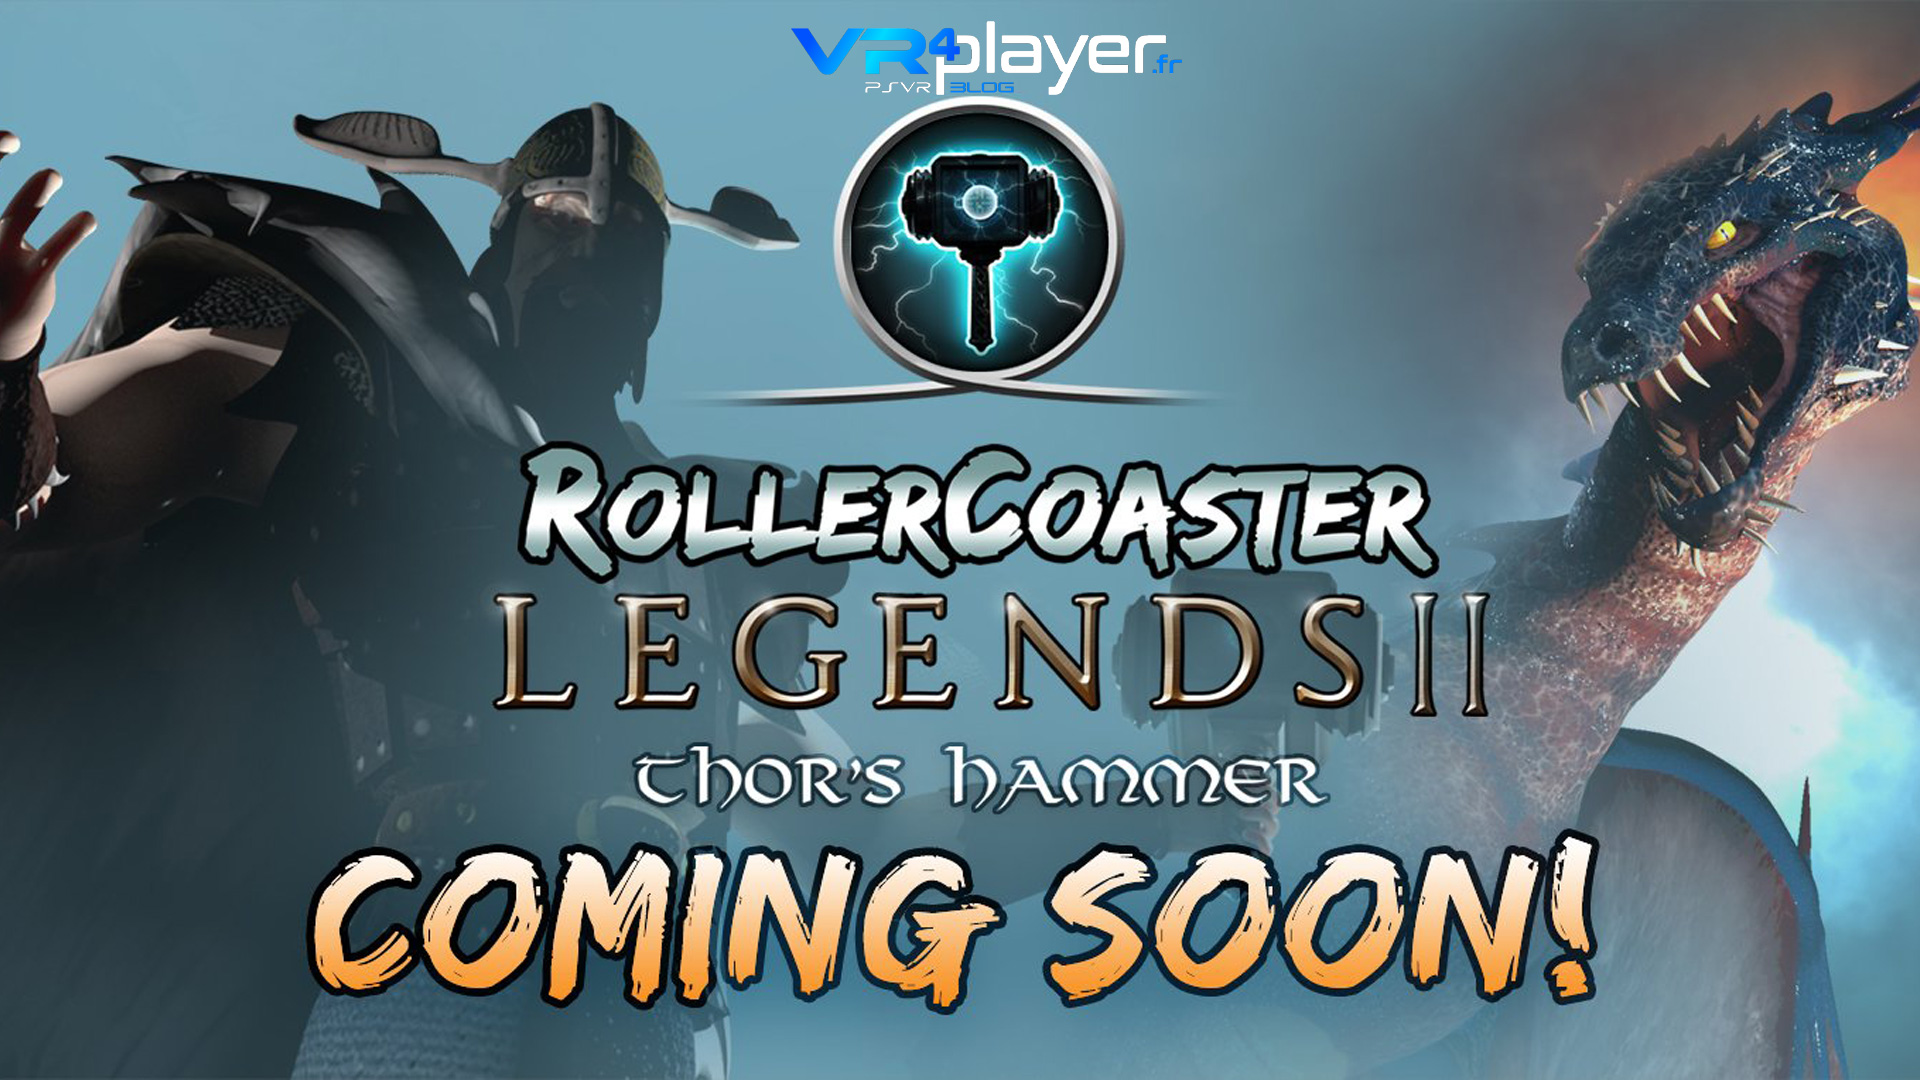 Rollercoaster Legends 2 Thor's Hammer